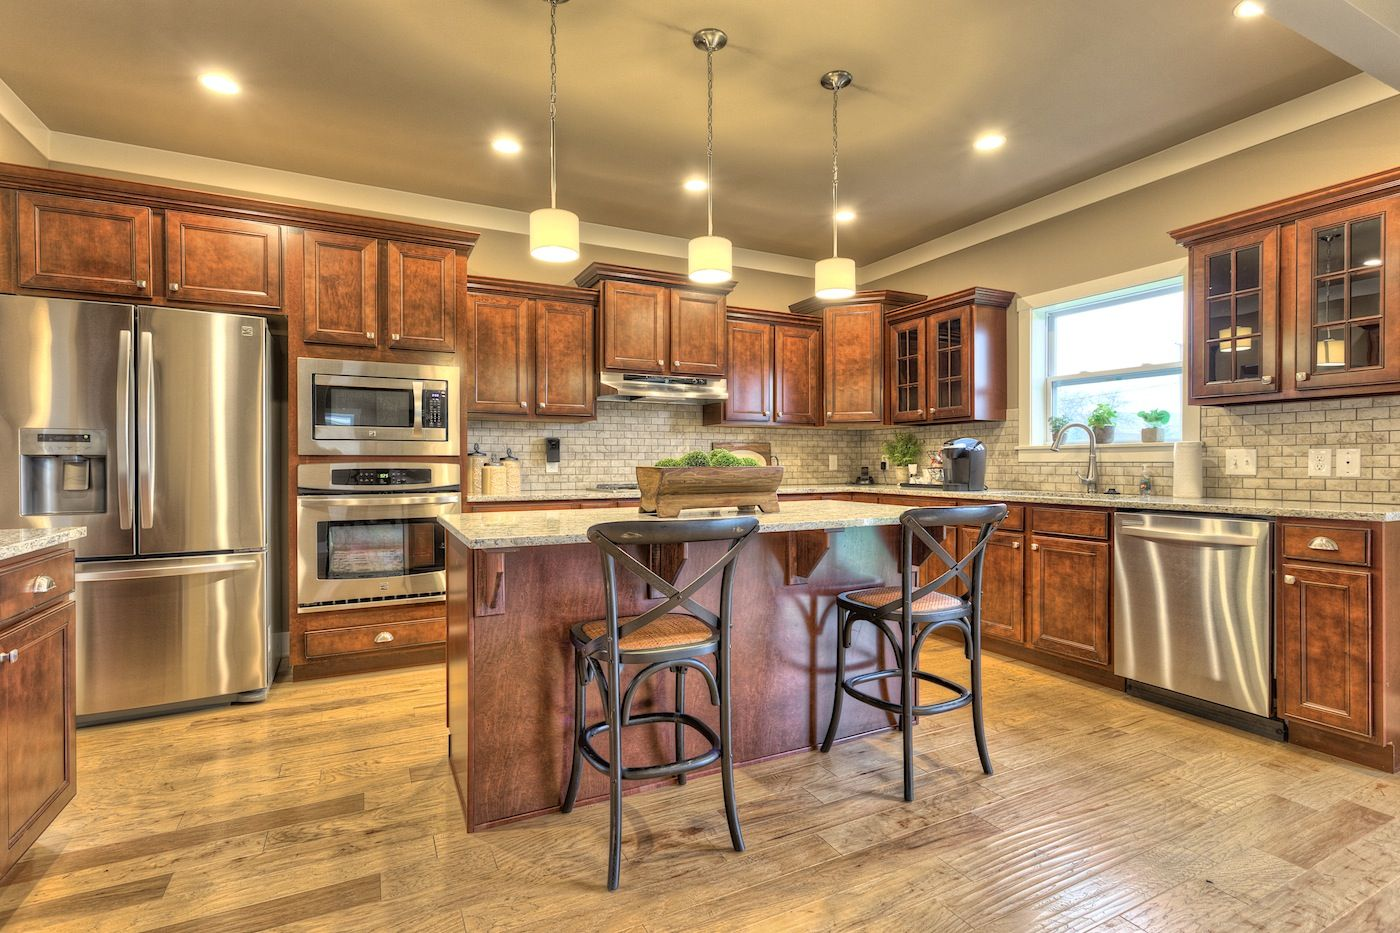 Kitchen featured in the Traditions 3100 V8.0g By Allen Edwin Homes in Benton Harbor, MI